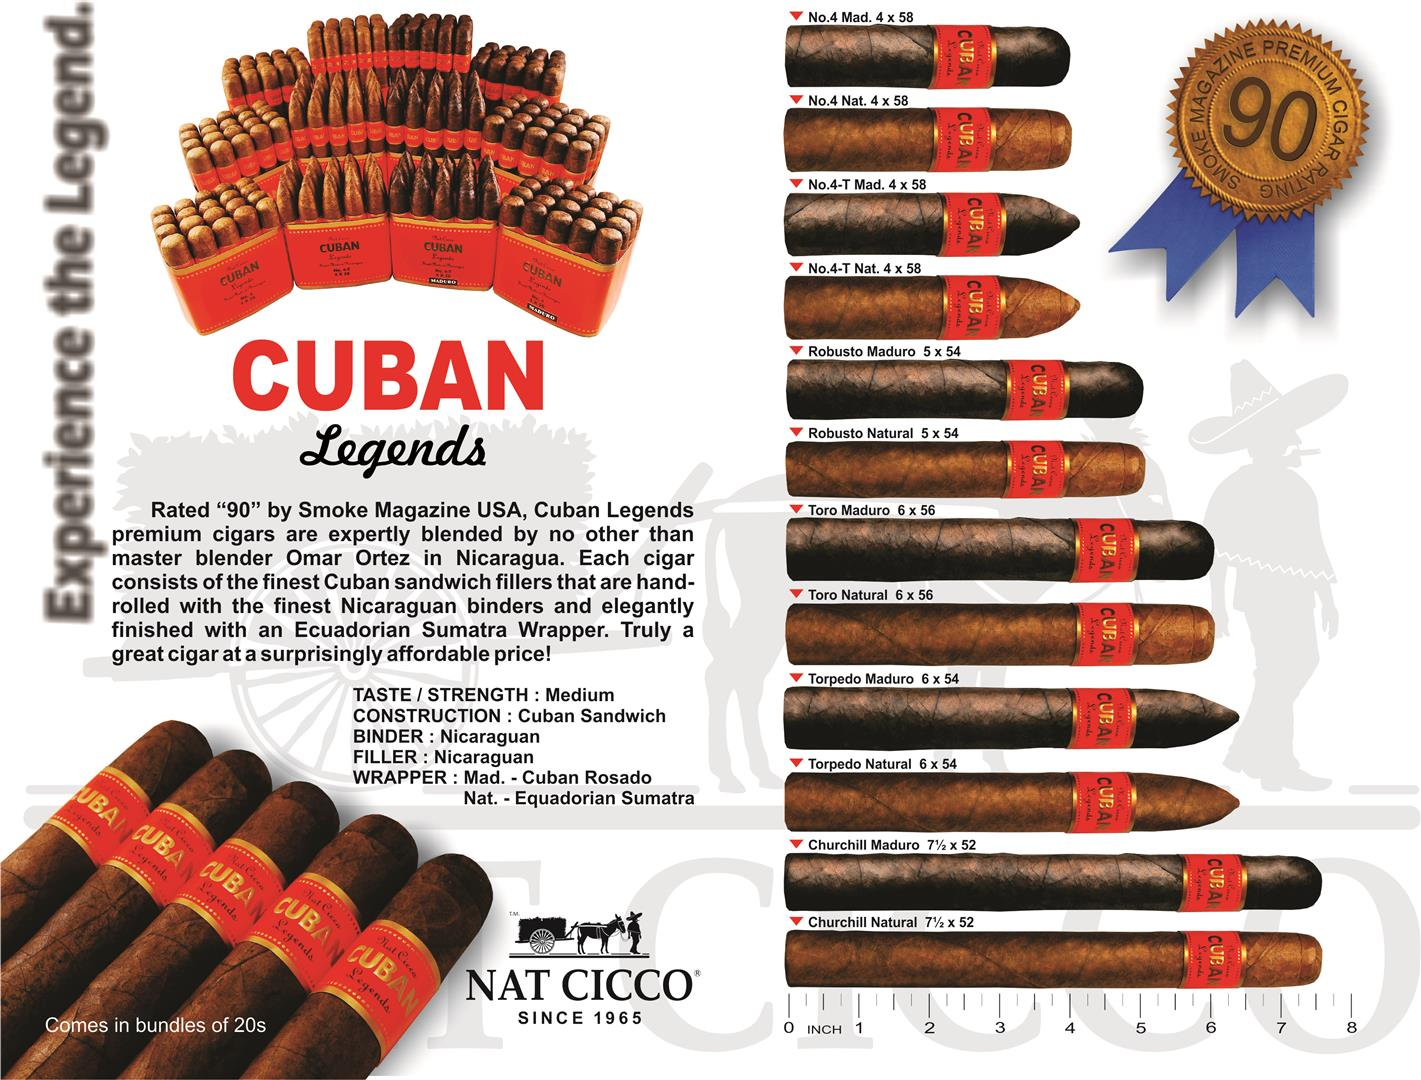 cuban legend cigars chart image